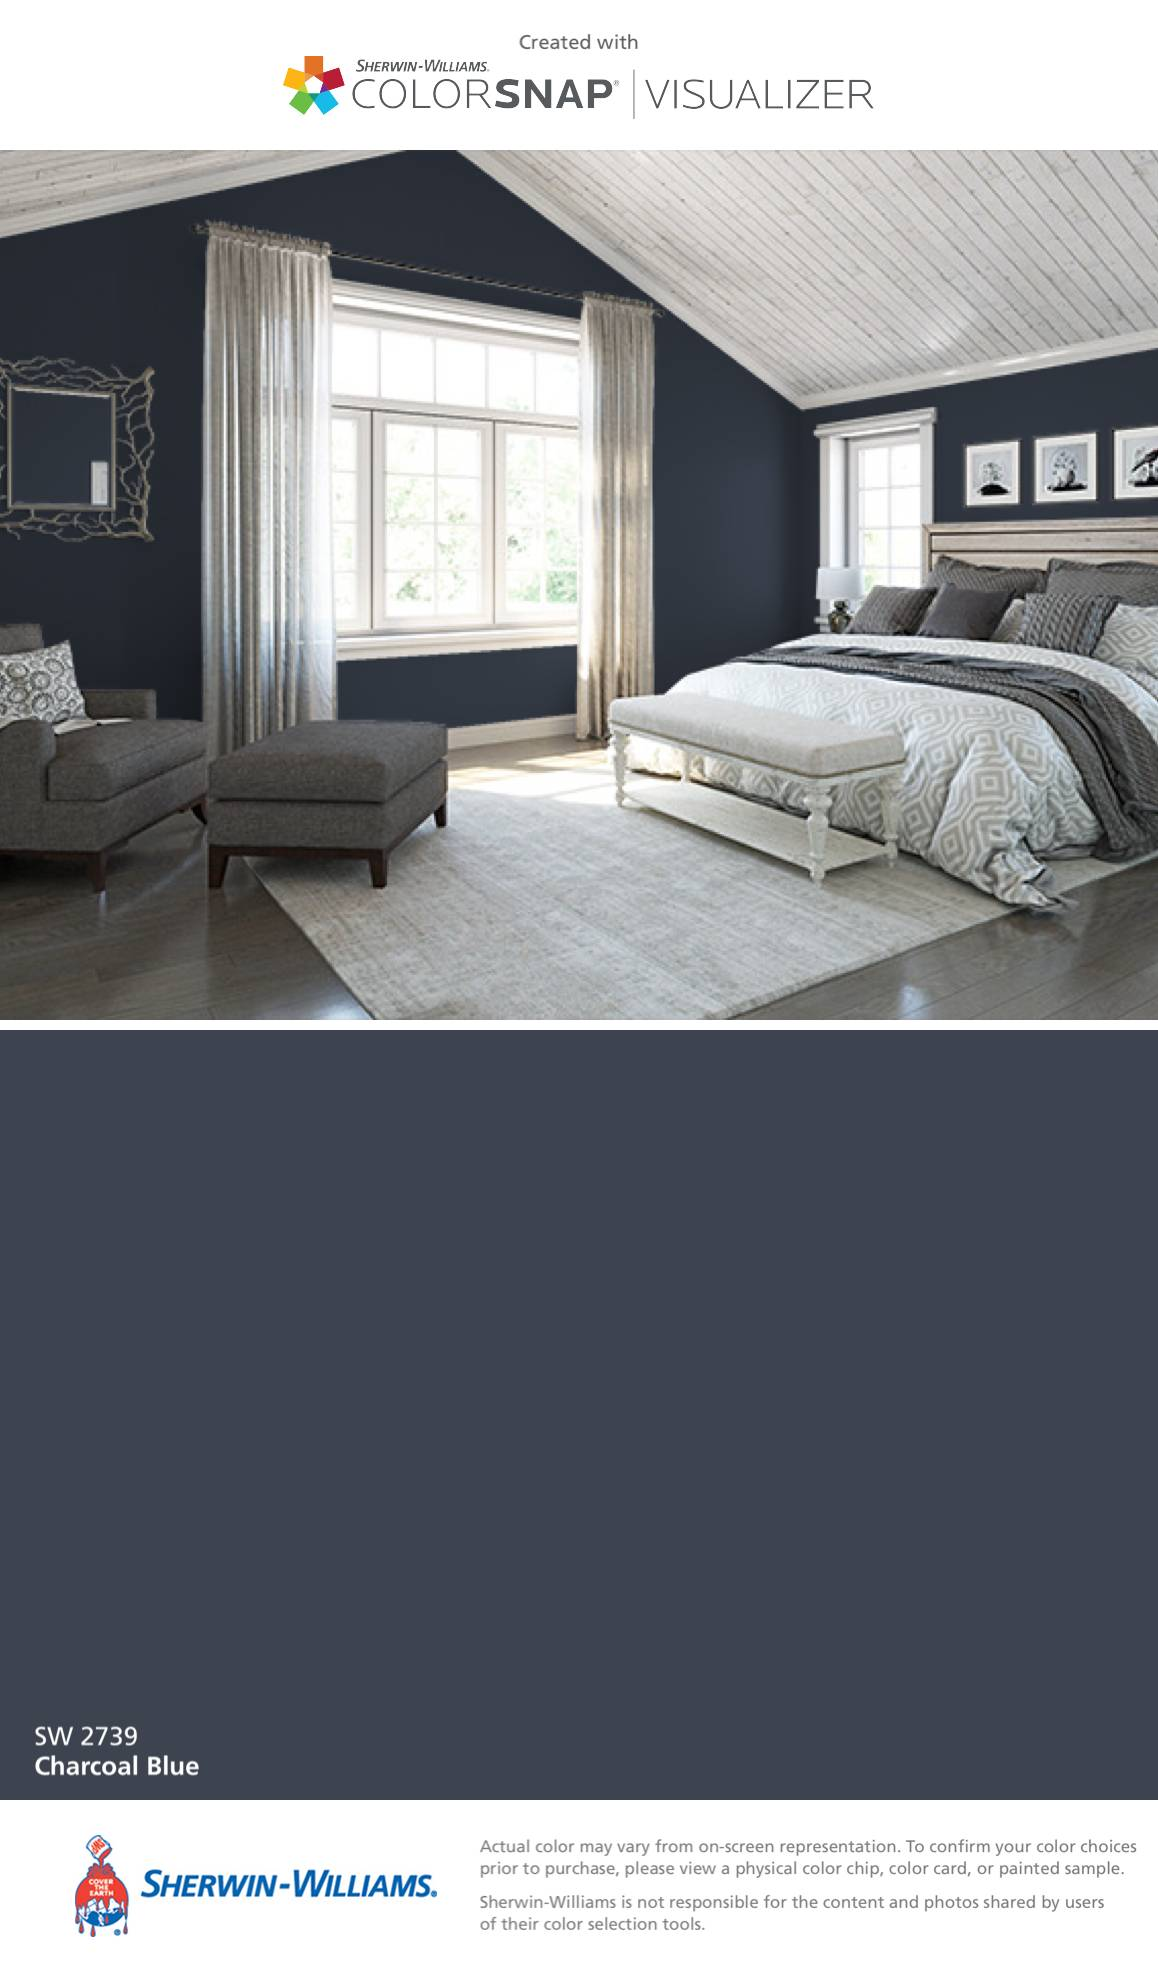 Silver Strand Sherwin Williams Bedroom Fresh I Found This Color with Colorsnap Visualizer for iPhone by